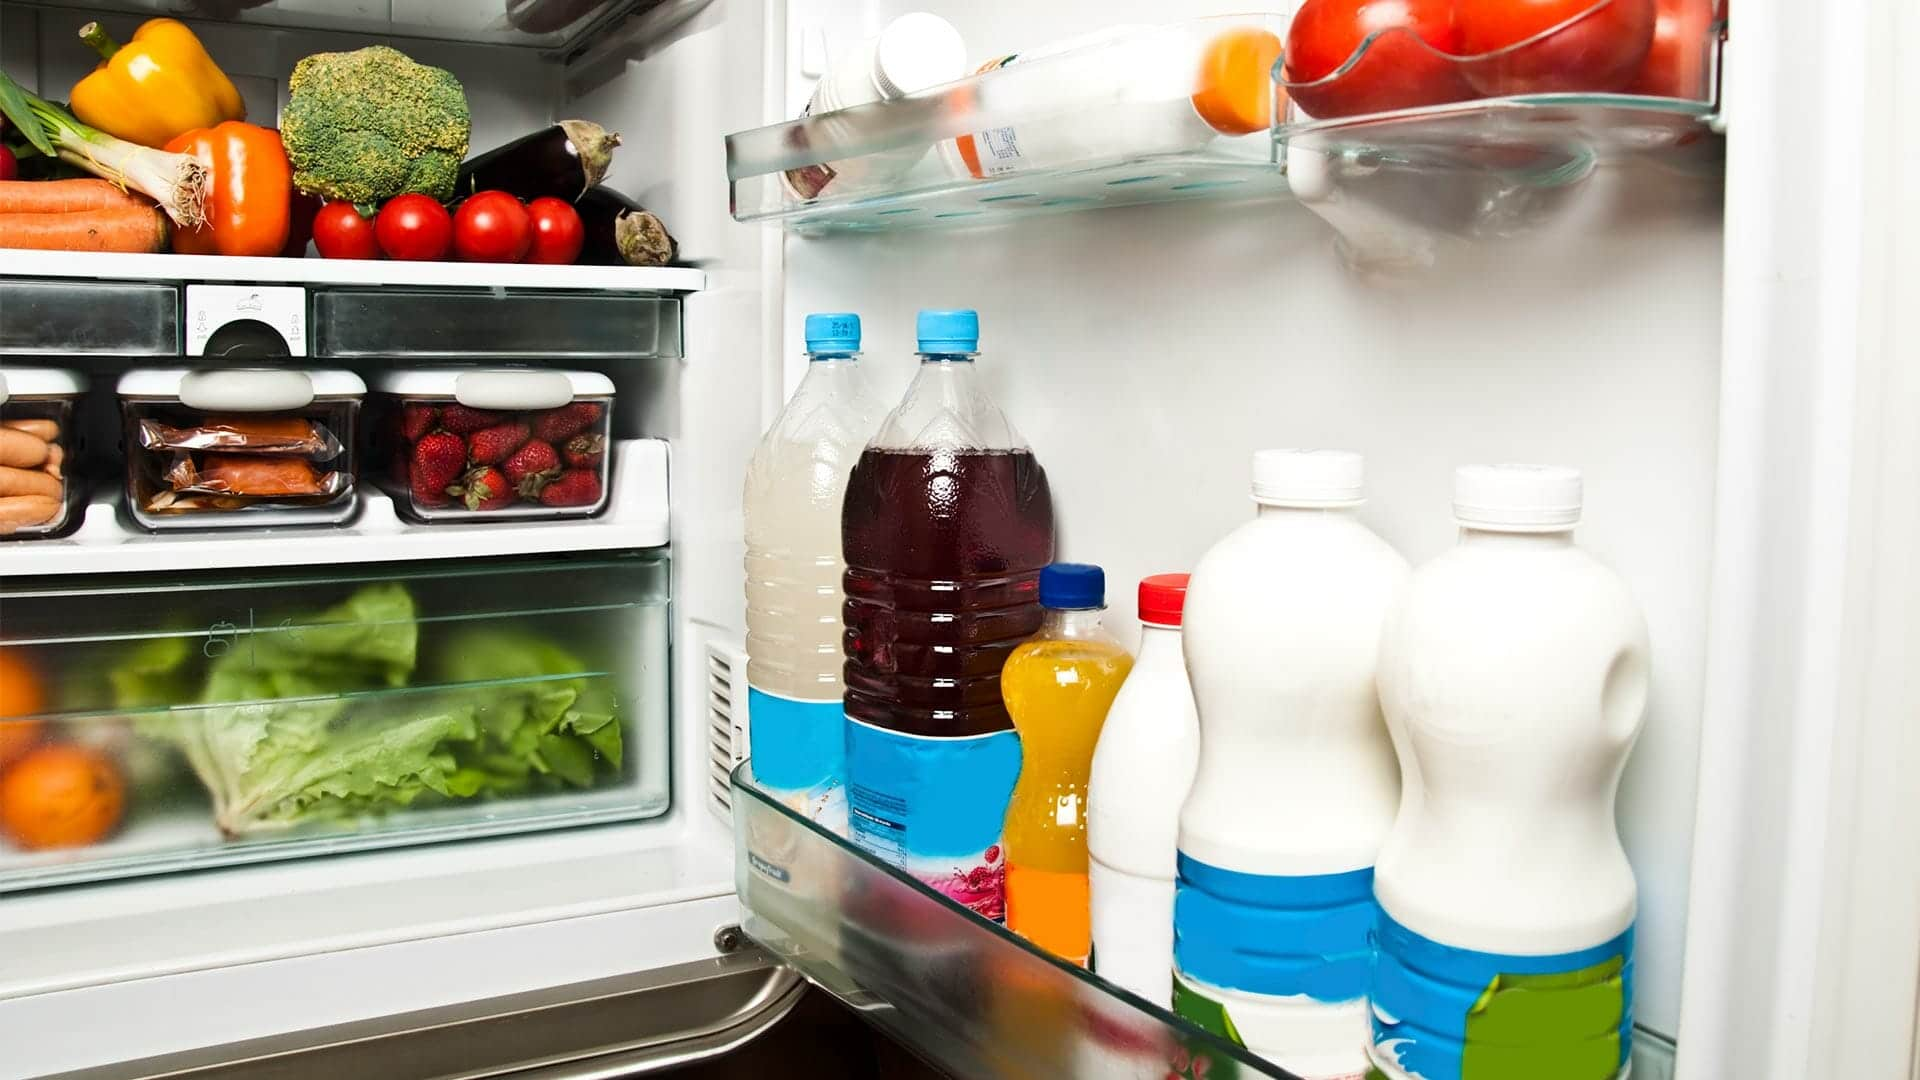 Hold the Laughter: Why the Internet-Connected Refrigerator Is a Great Idea